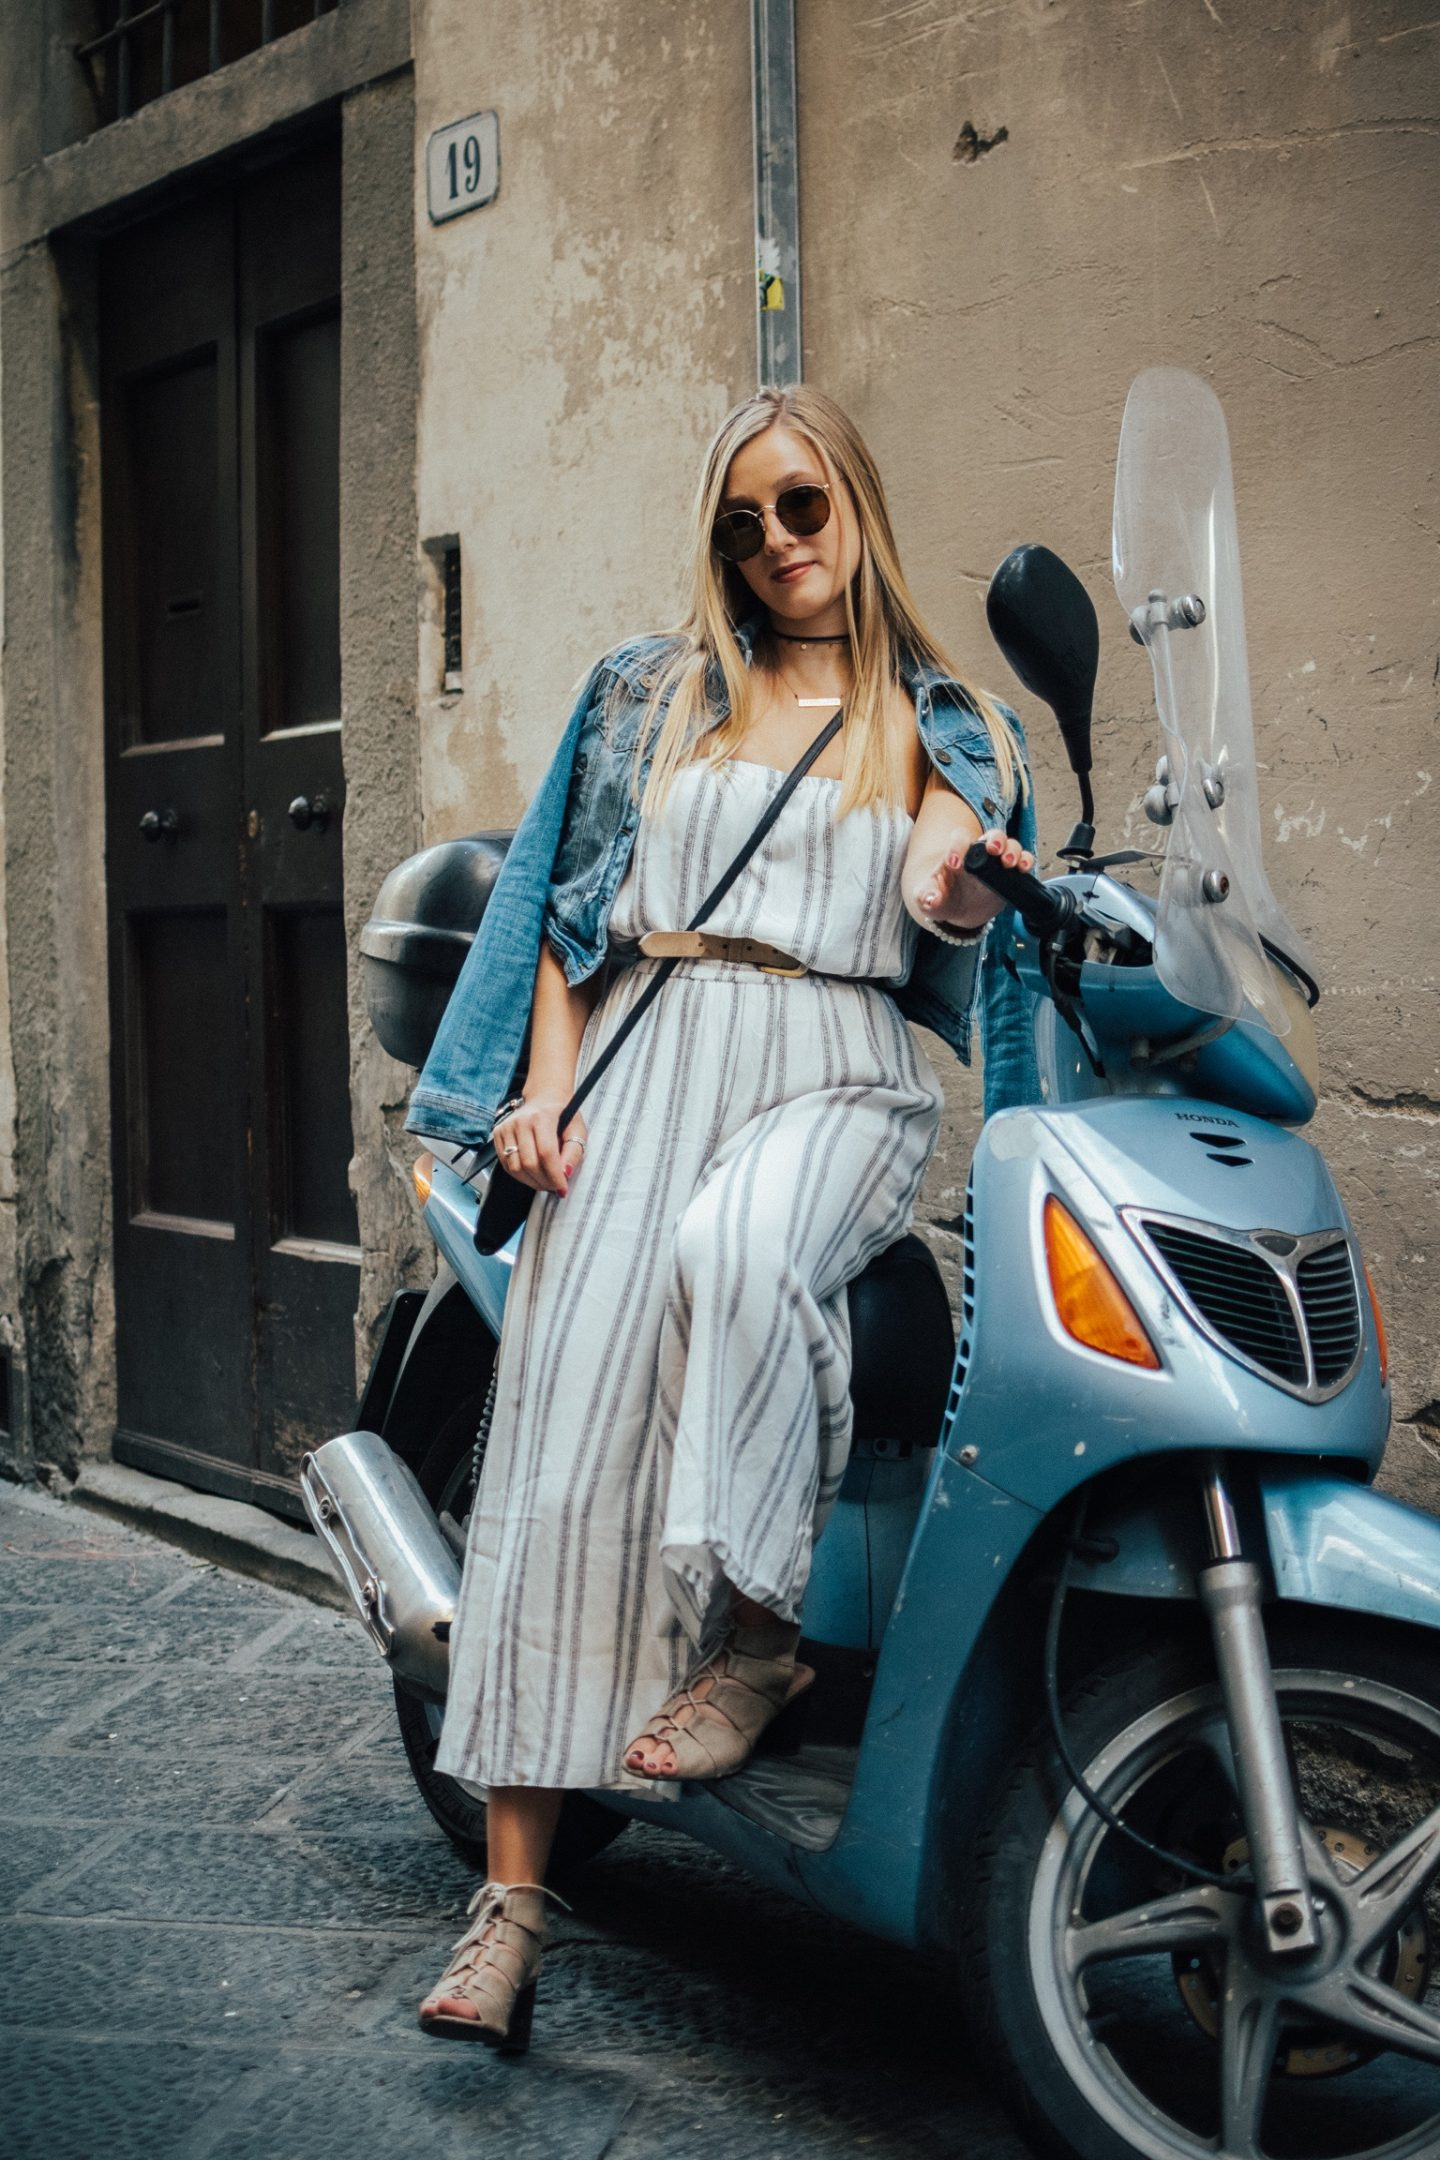 Posing on a vespa during my semester abroad in Florence, Italy.